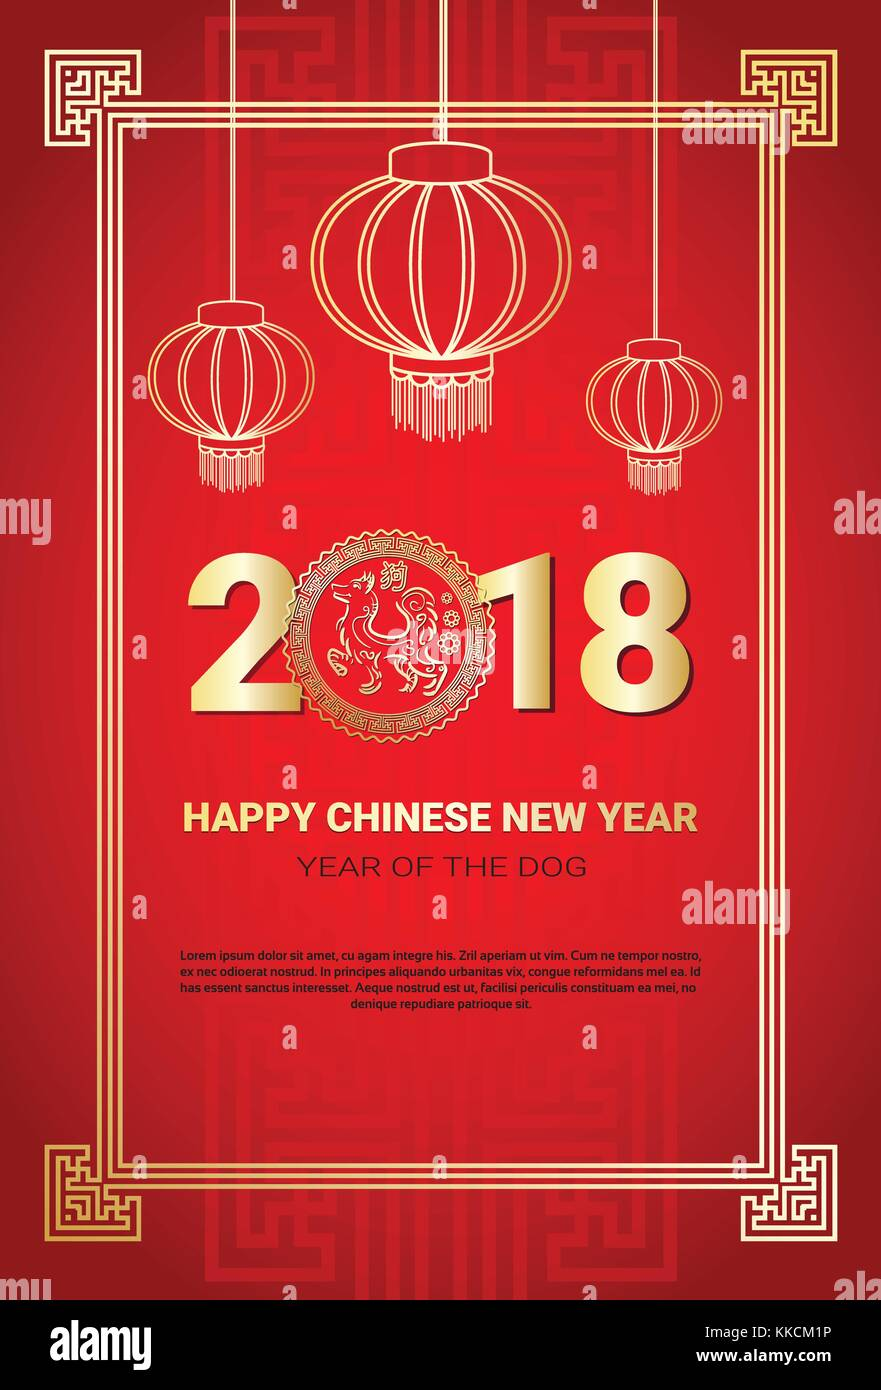 happy chinese new year template poster with copy space 2018 lunar dog symbol red and golden colors